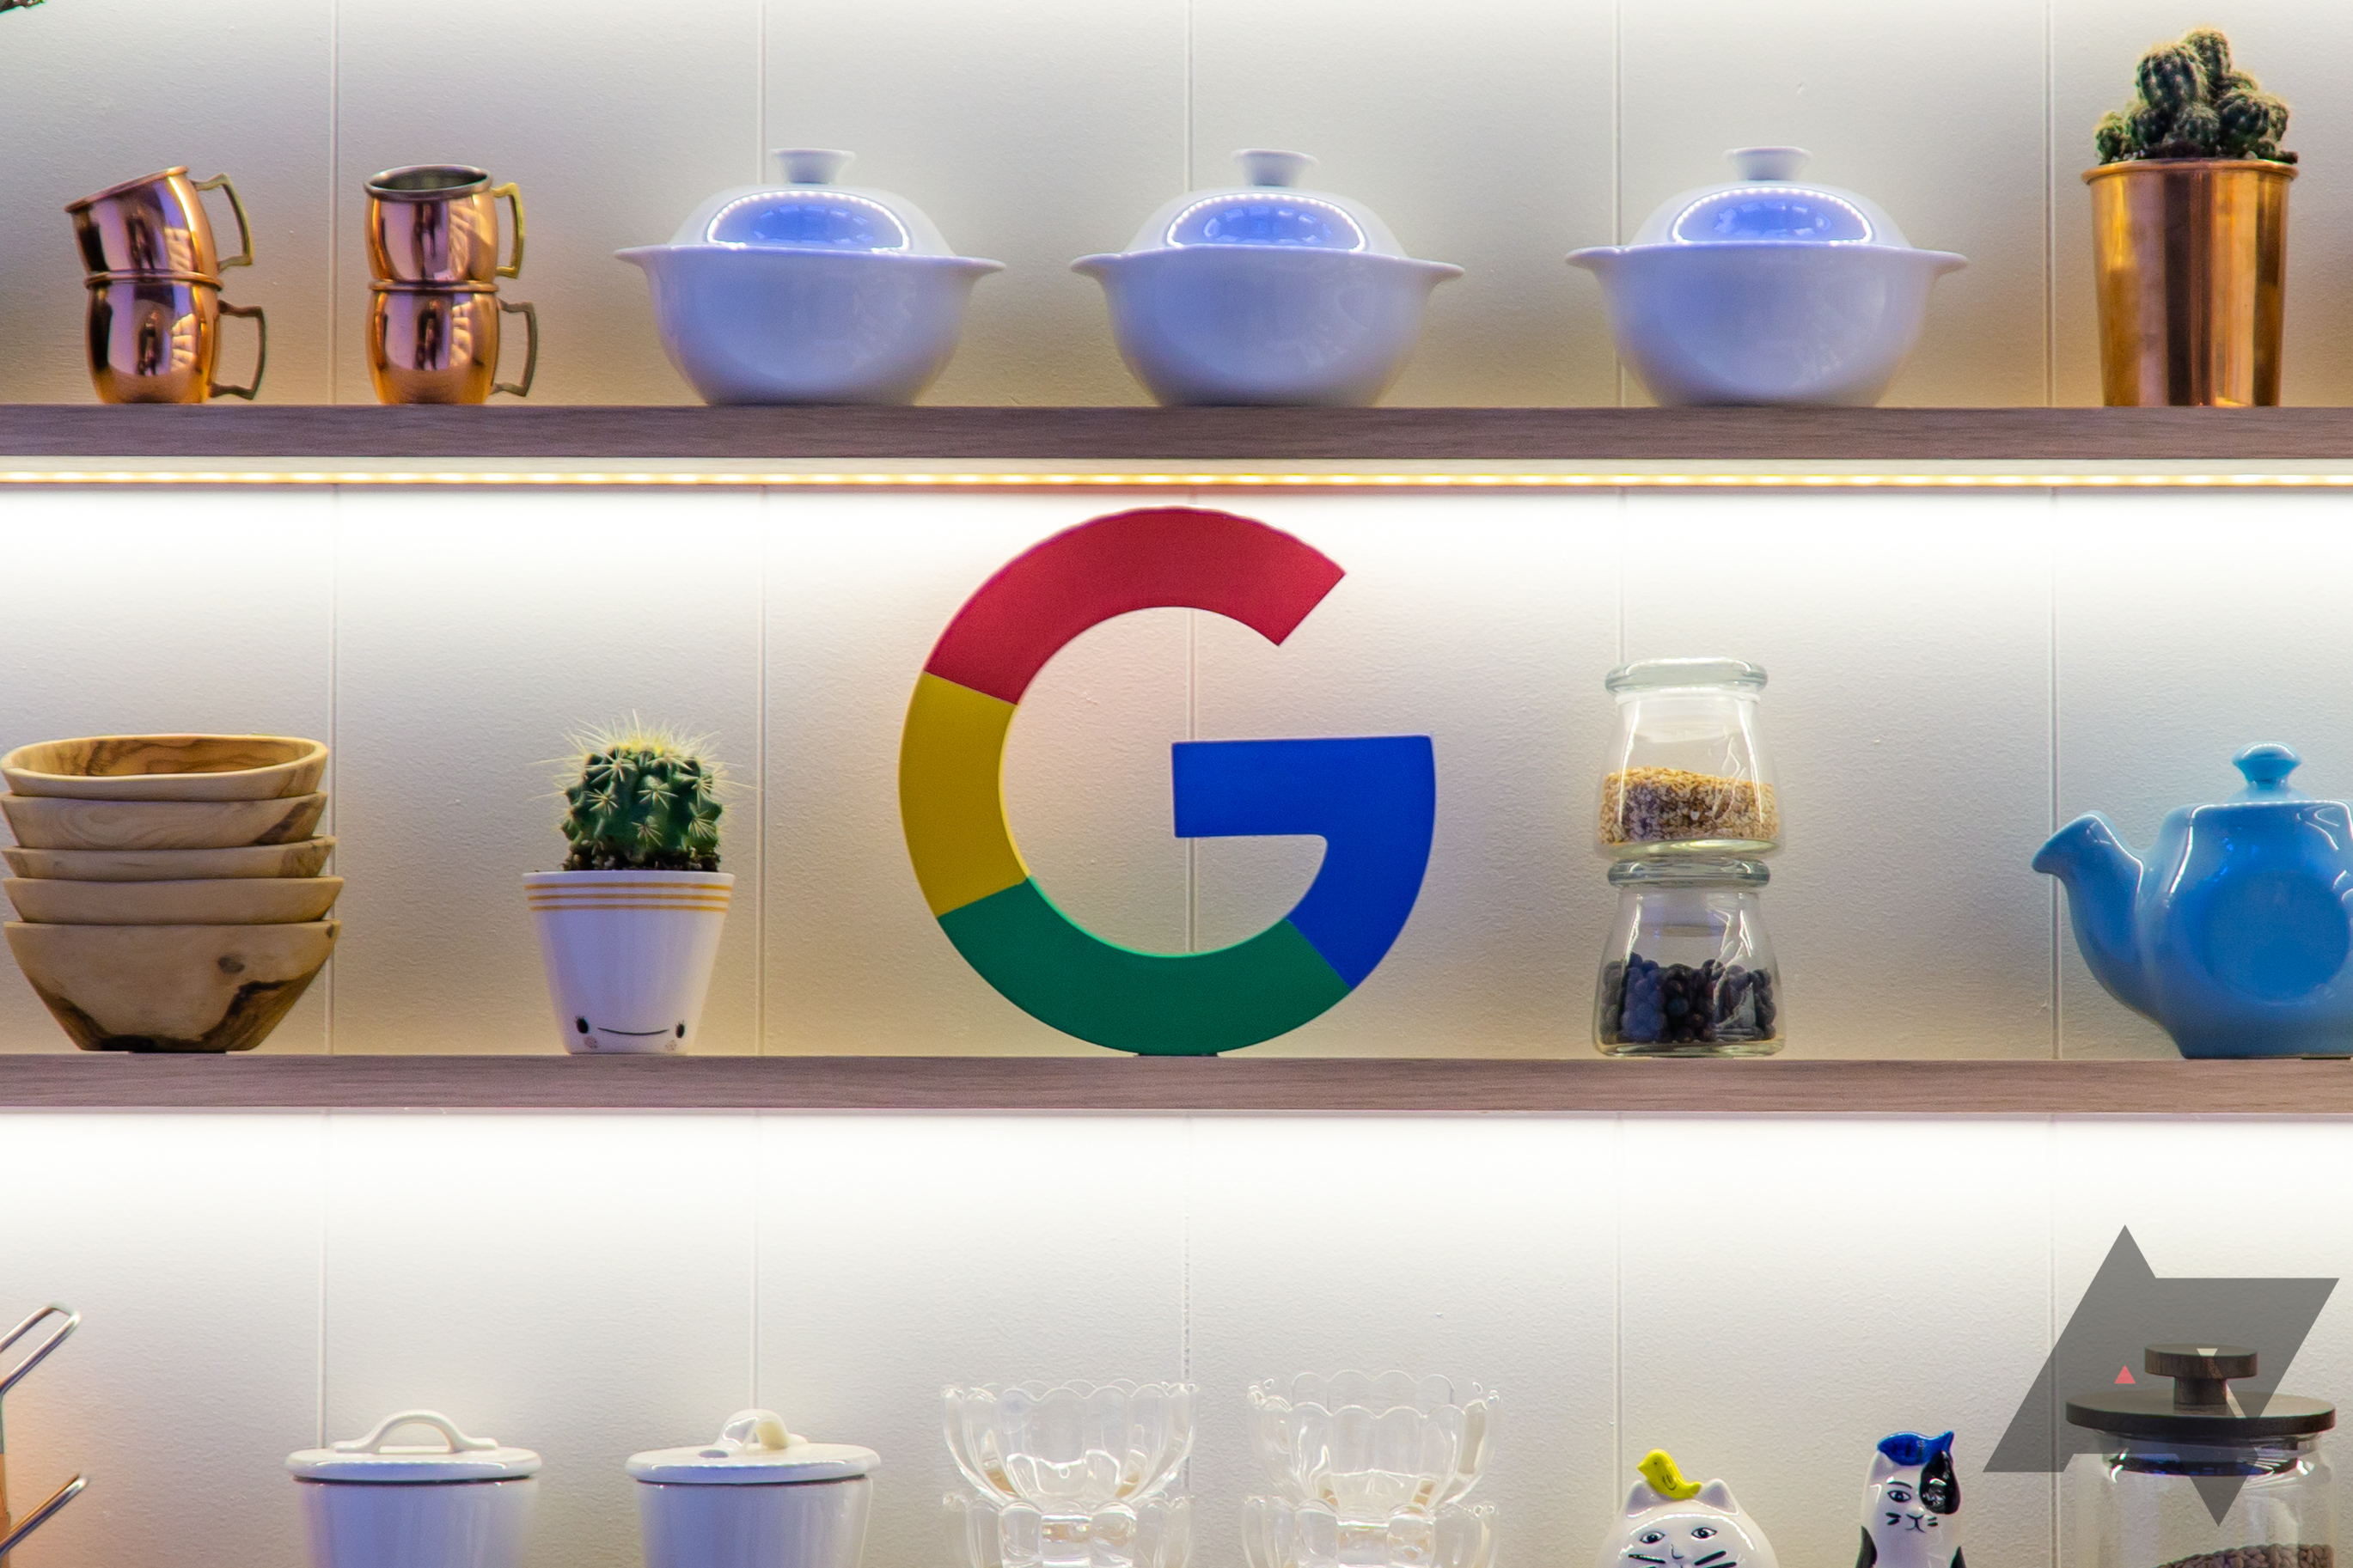 Google Store now selling 'Certified Refurbished' devices